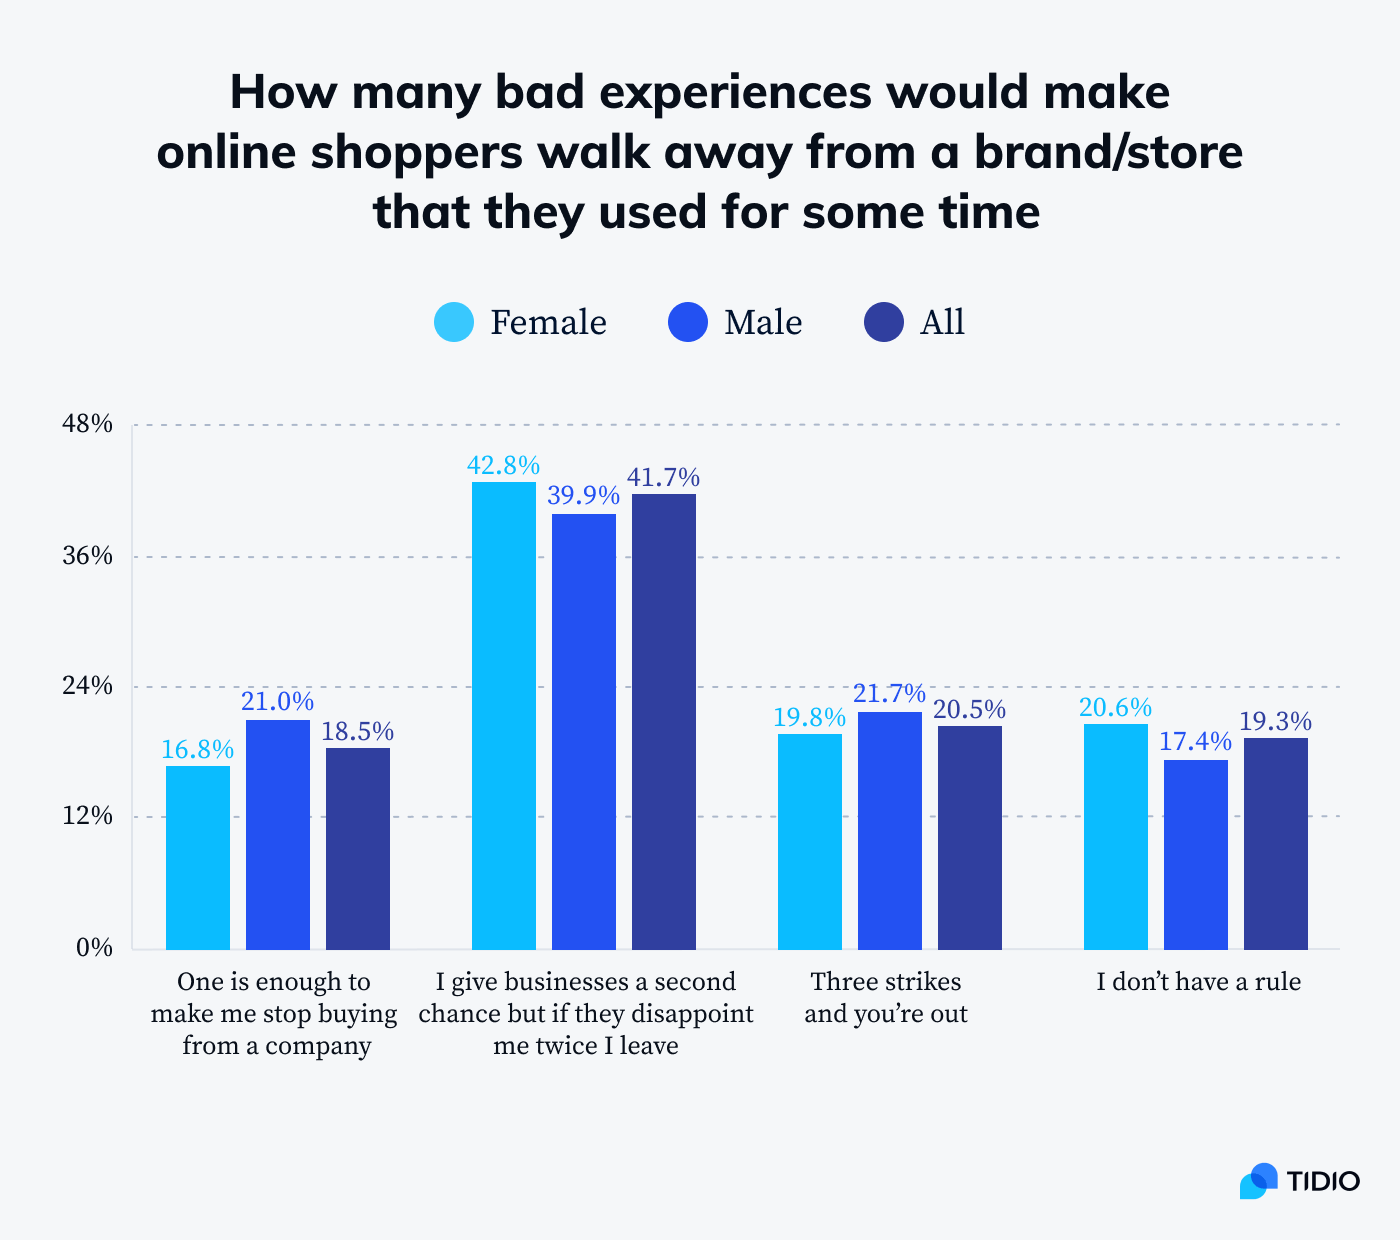 How many bad experiences would make online shoppers walk away from a brand/store that they used for some time